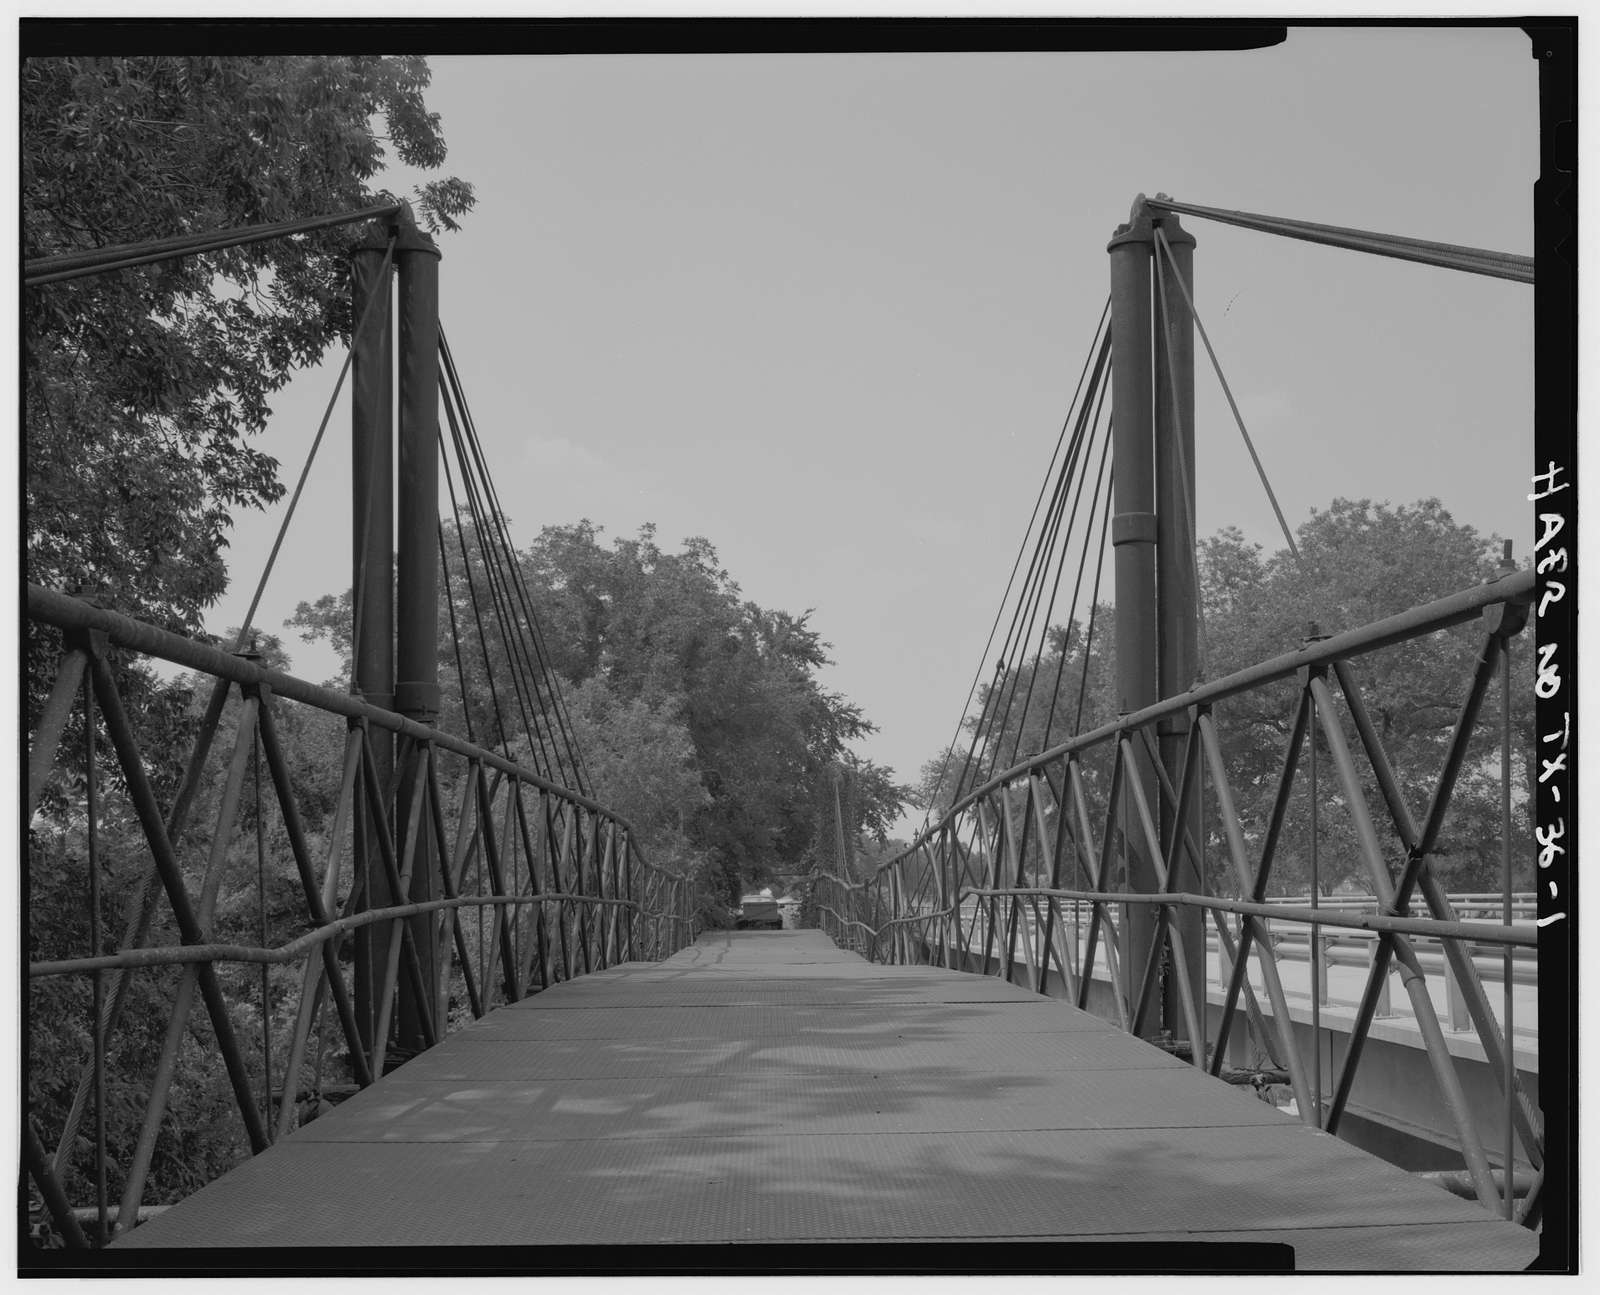 Bluff Dale Suspension Bridge, Spanning Paluxy River at County Route 149, Bluff Dale, Erath County, TX